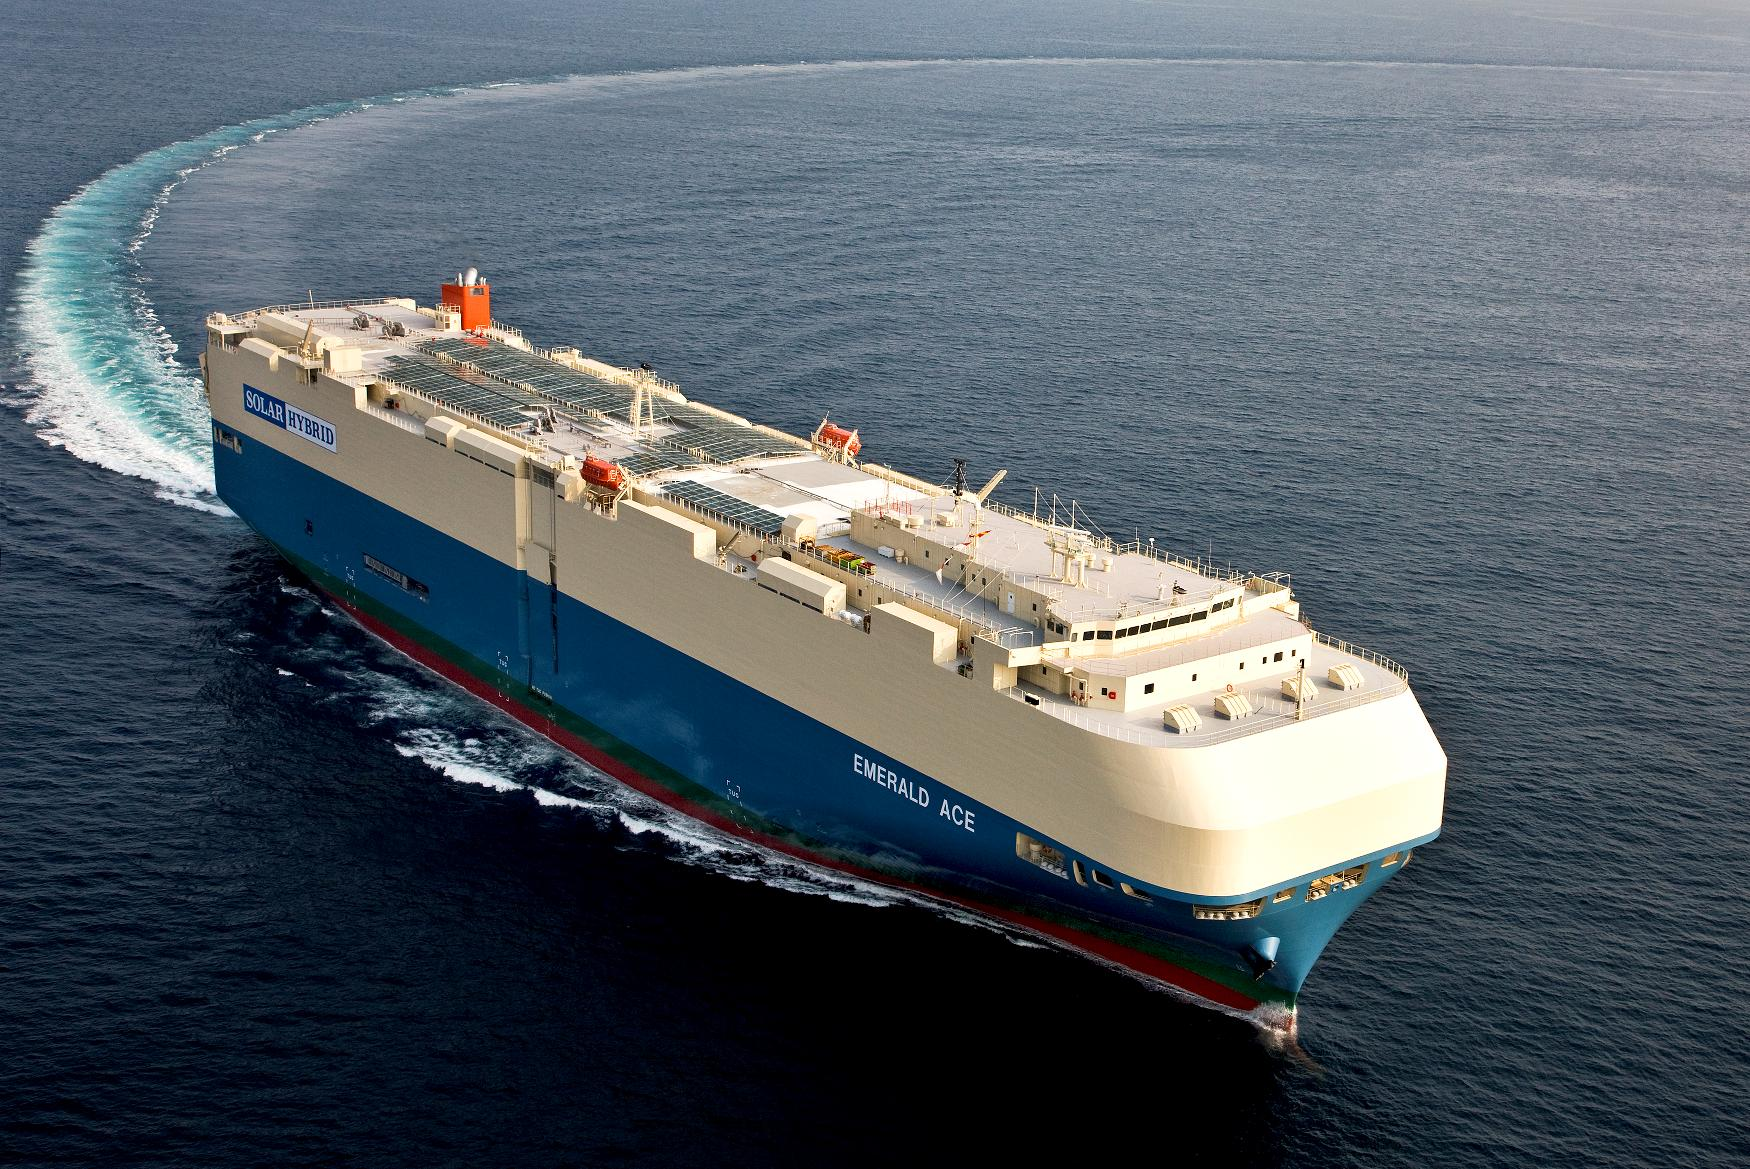 Panasonic 39 S Green Technology Helps Reduce Carbon Emissions From Ocean Going Car Carrier